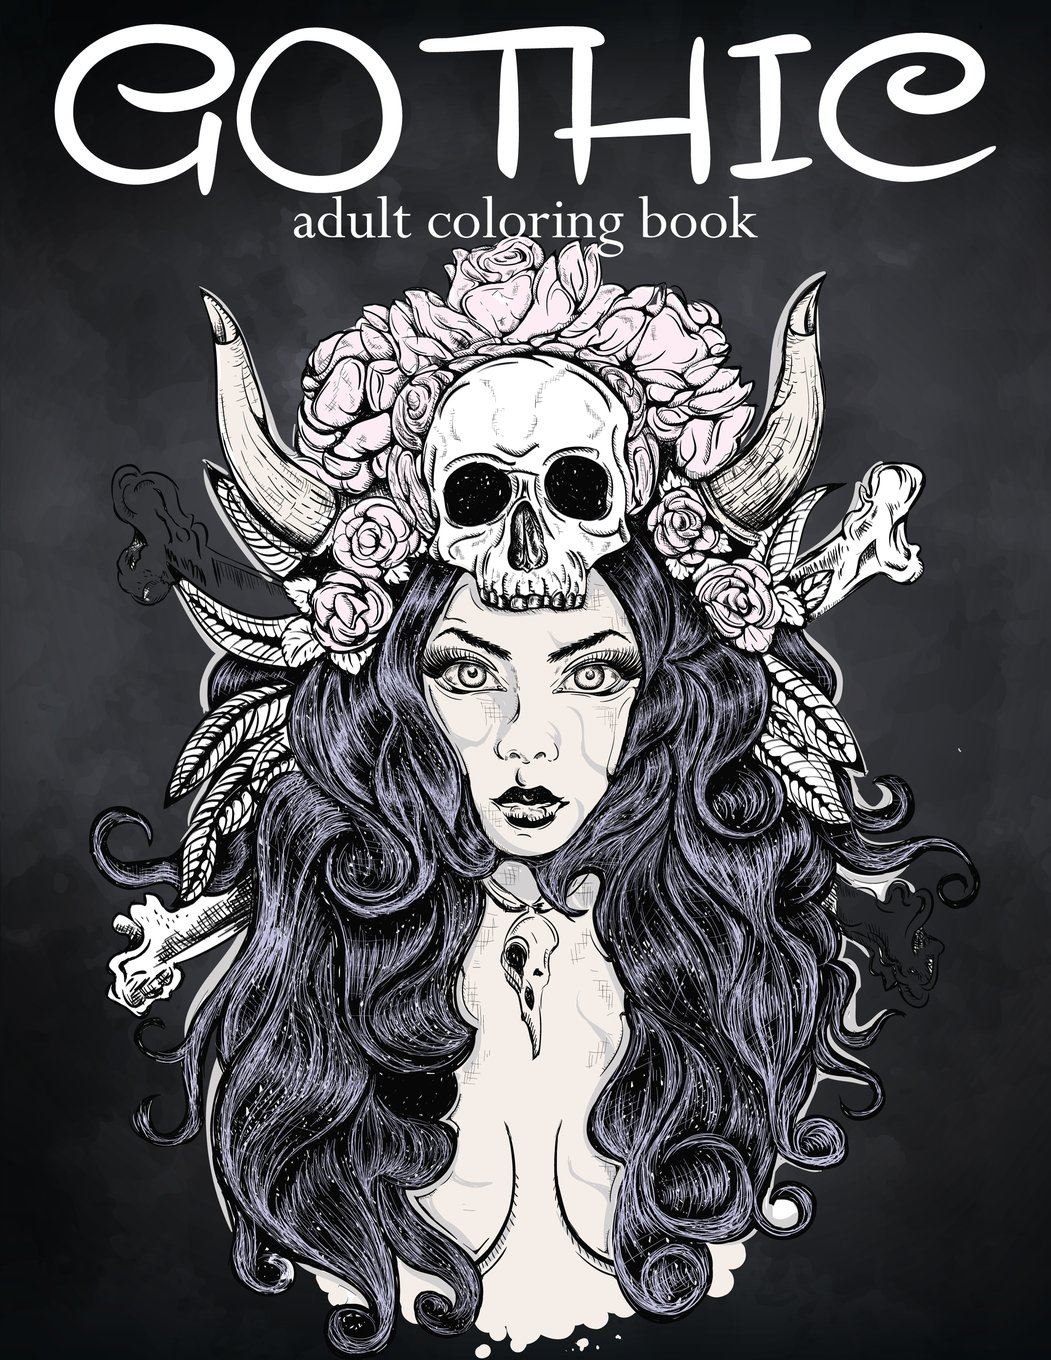 amazoncom gothic coloring book coloring book for adults featuring sugar skull coloring page fantasy coloring sexy gothic fashion adult coloring - Gothic Coloring Book